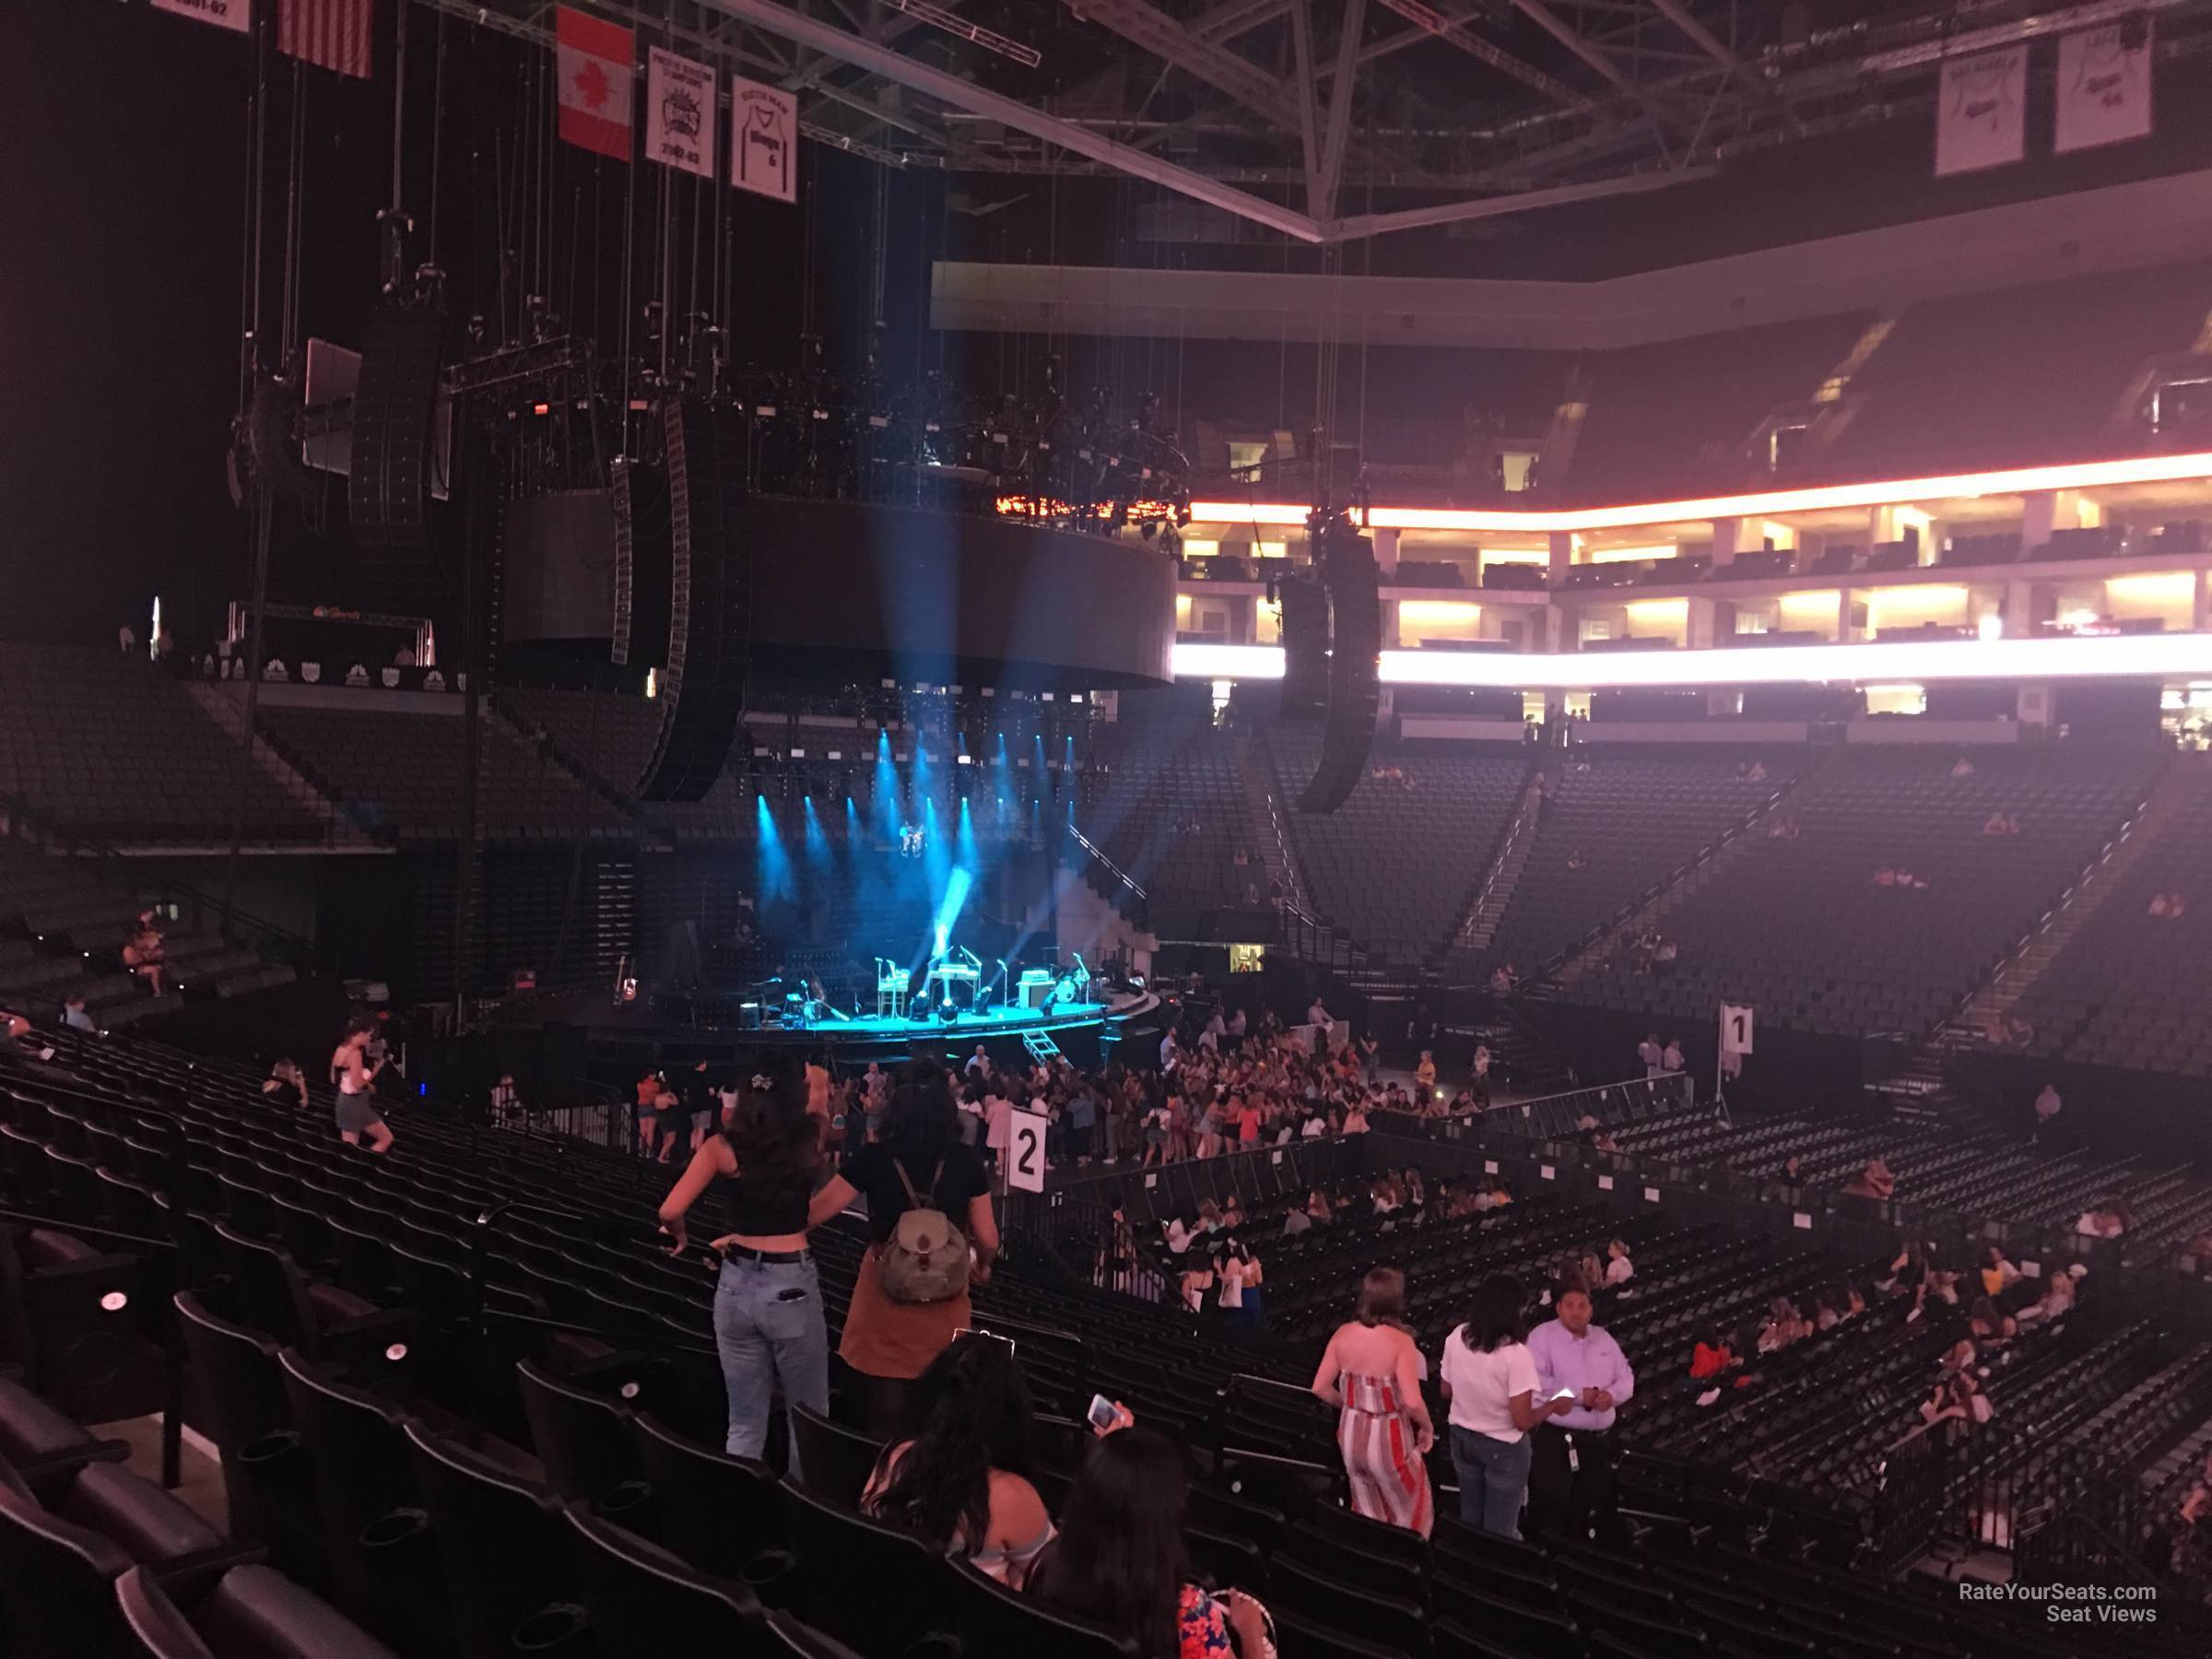 Concert Seat View for Golden 1 Center Section 119, Row M